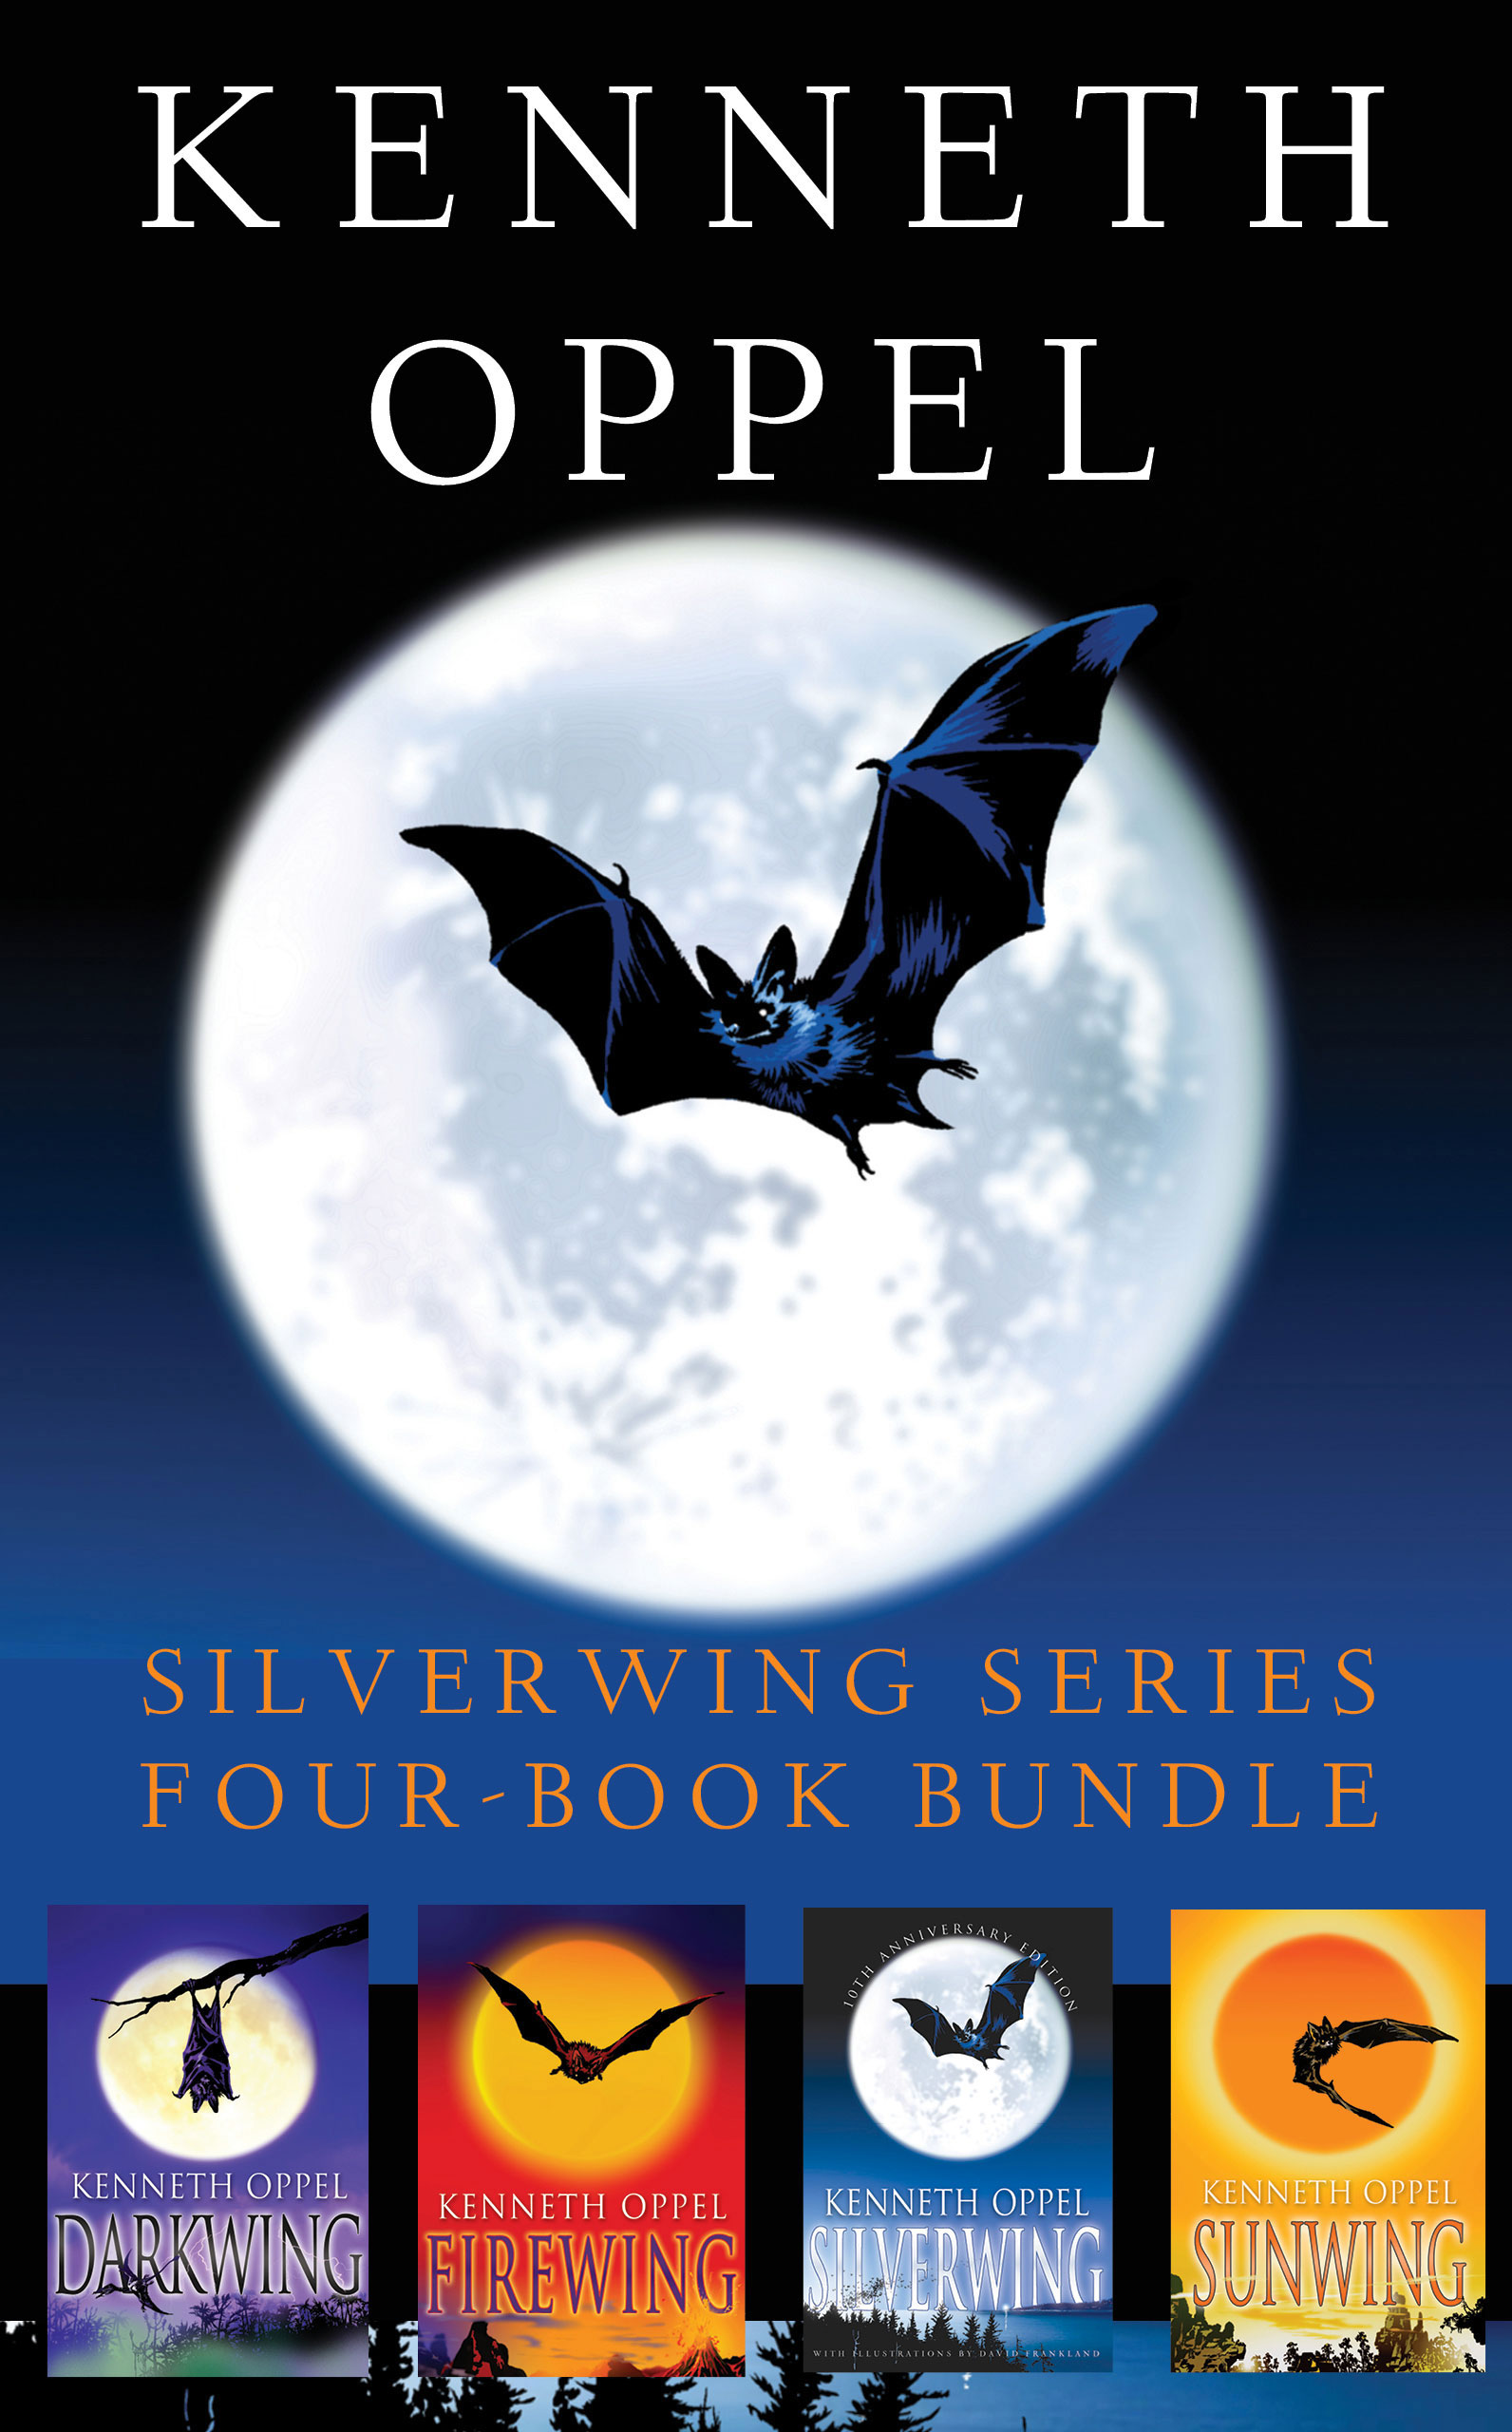 Cover Image of Kenneth Oppel Silverwing Series: Four-Book Bundle